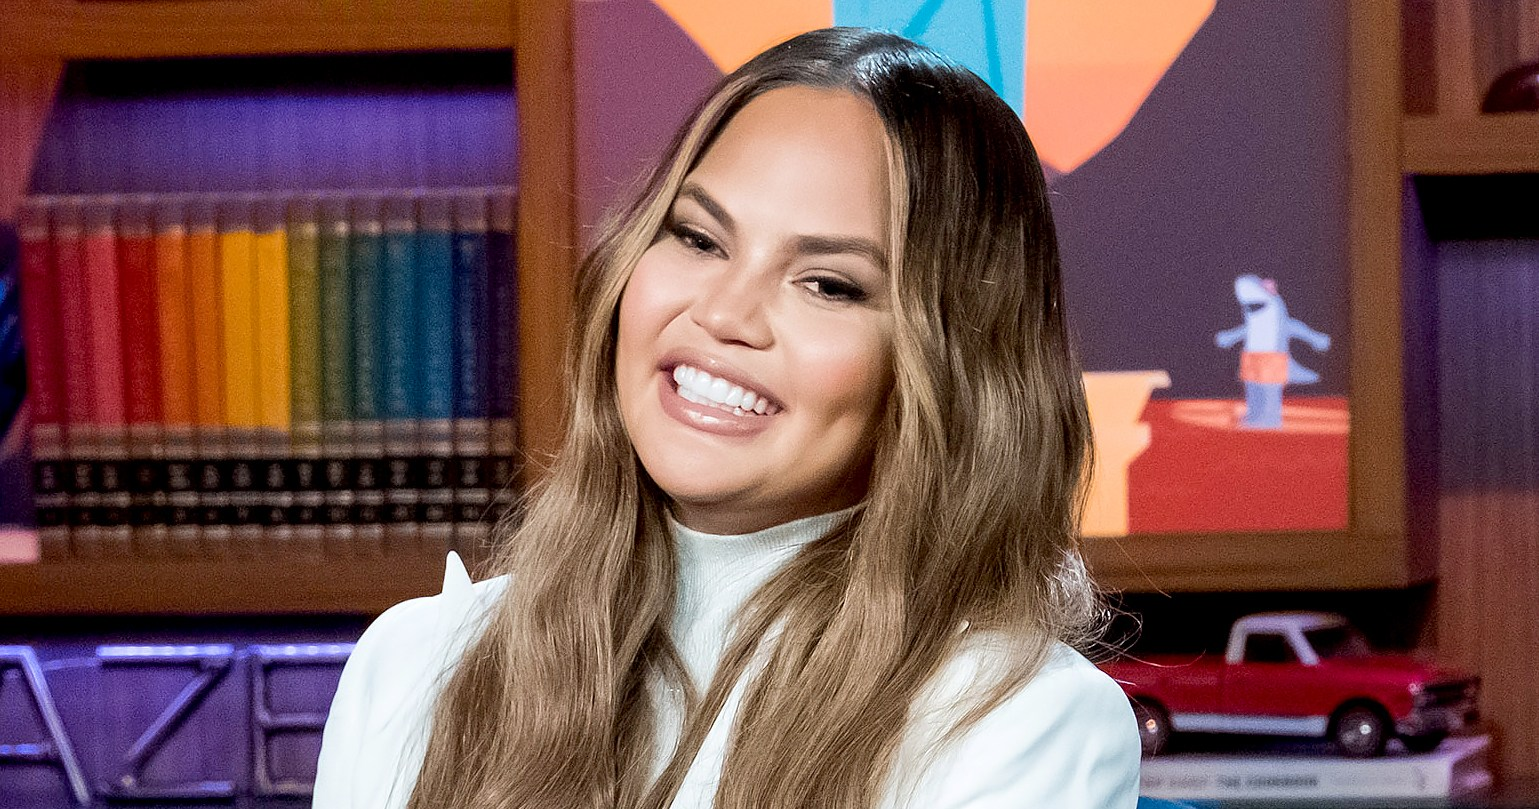 Chrissy Teigen's 'Mayor of Twitter' Cake Proves She Rules the App